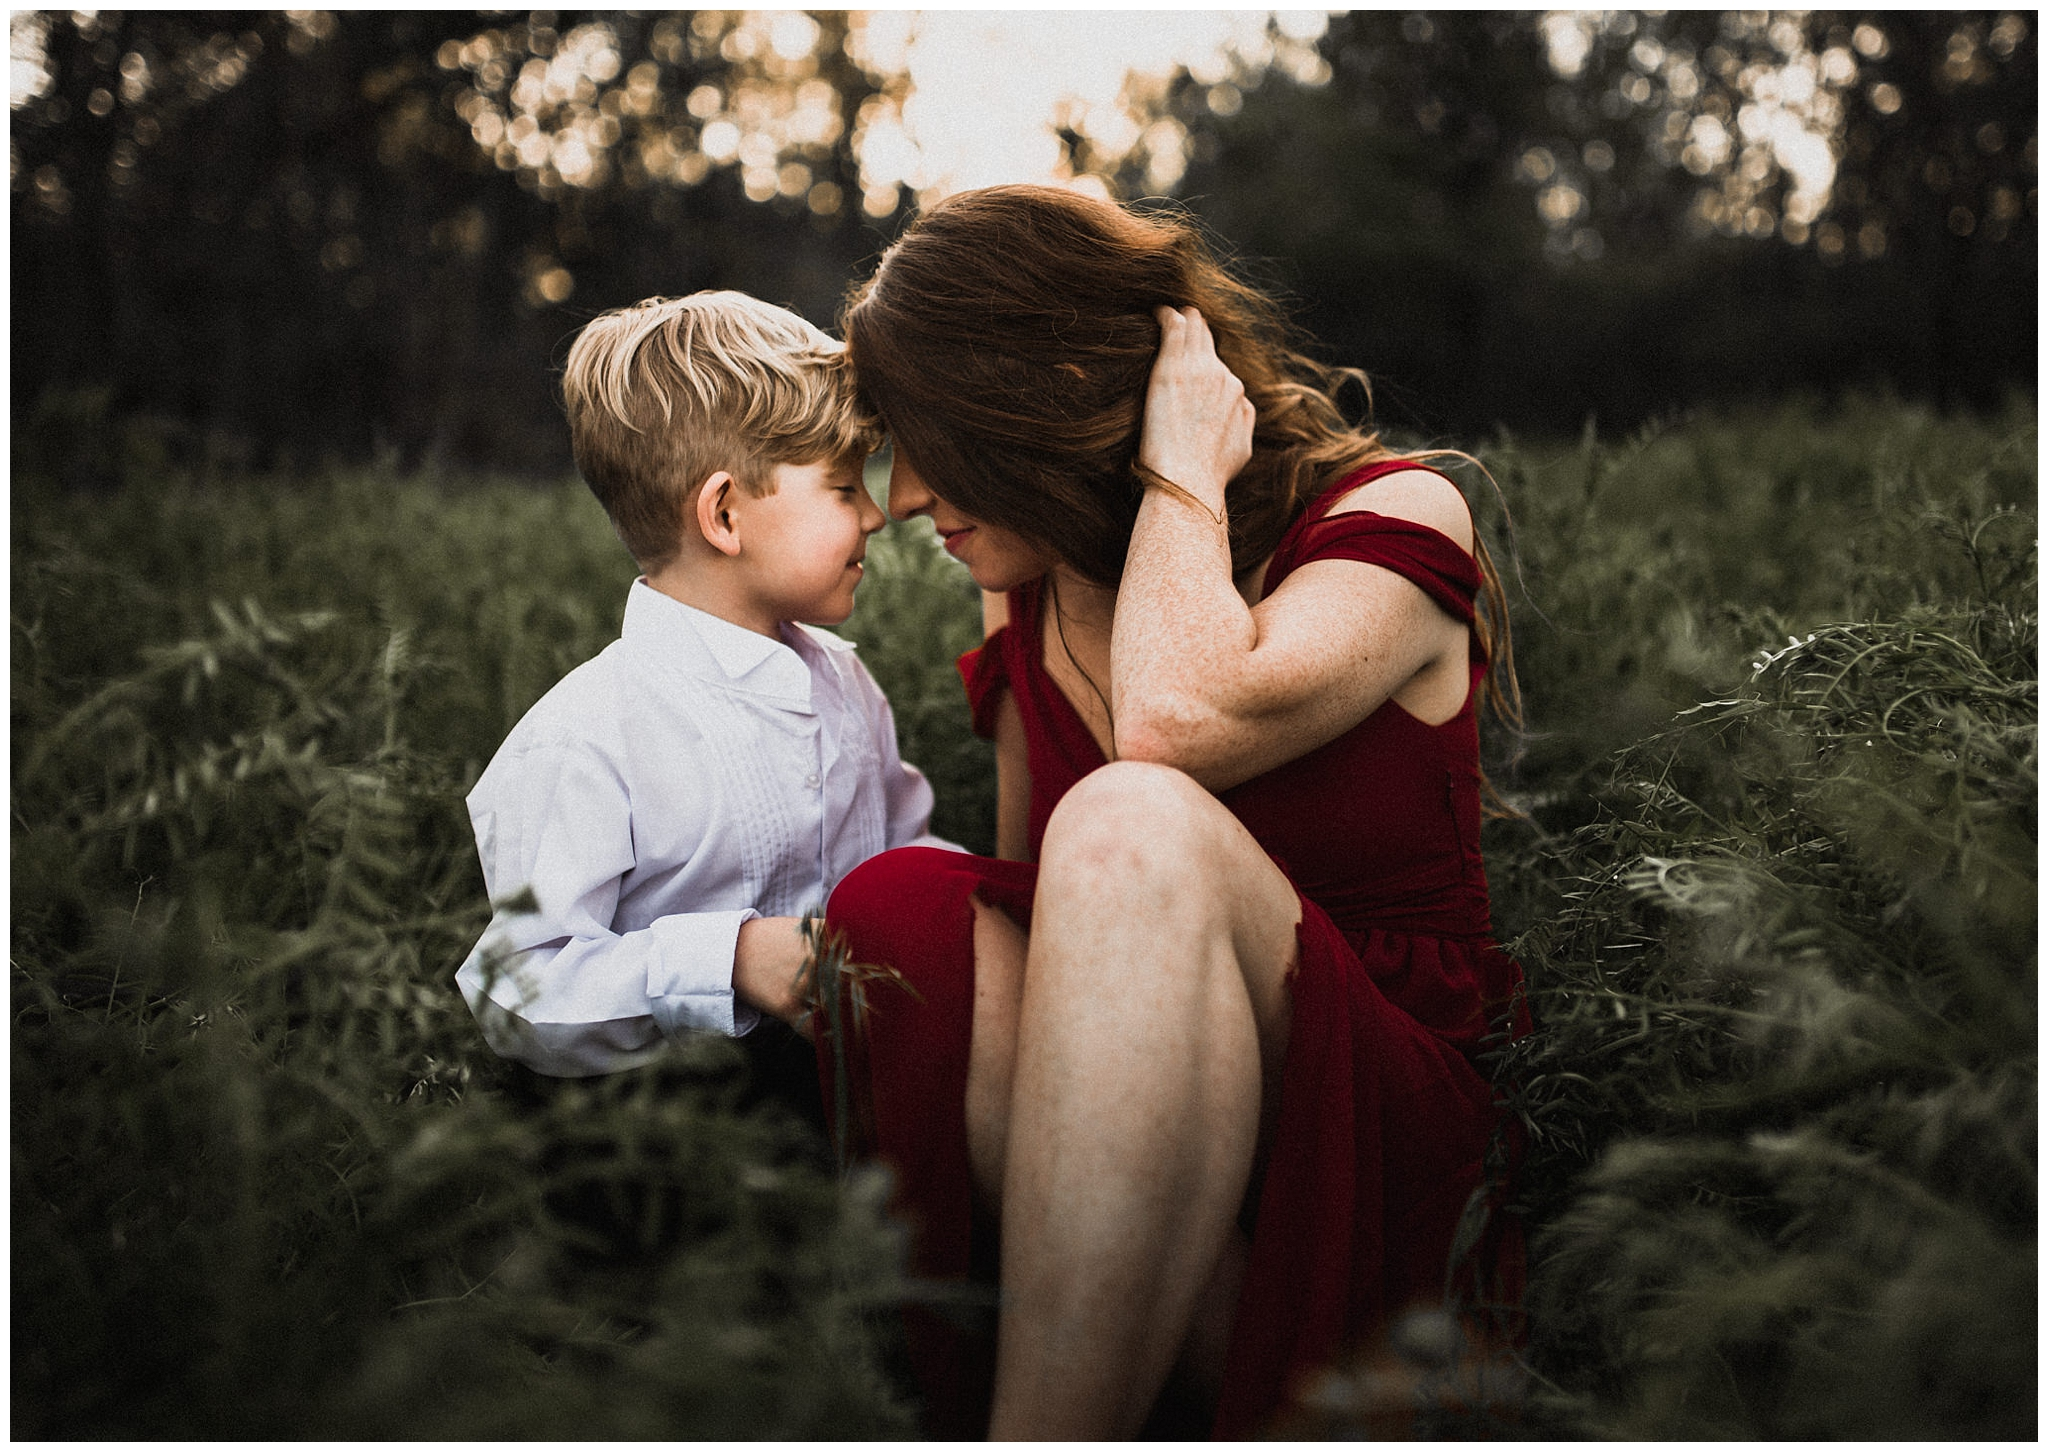 twyla jones photography | south florida family photographer | mother son session in a meadow-20160420-_TDJ3982.jpg